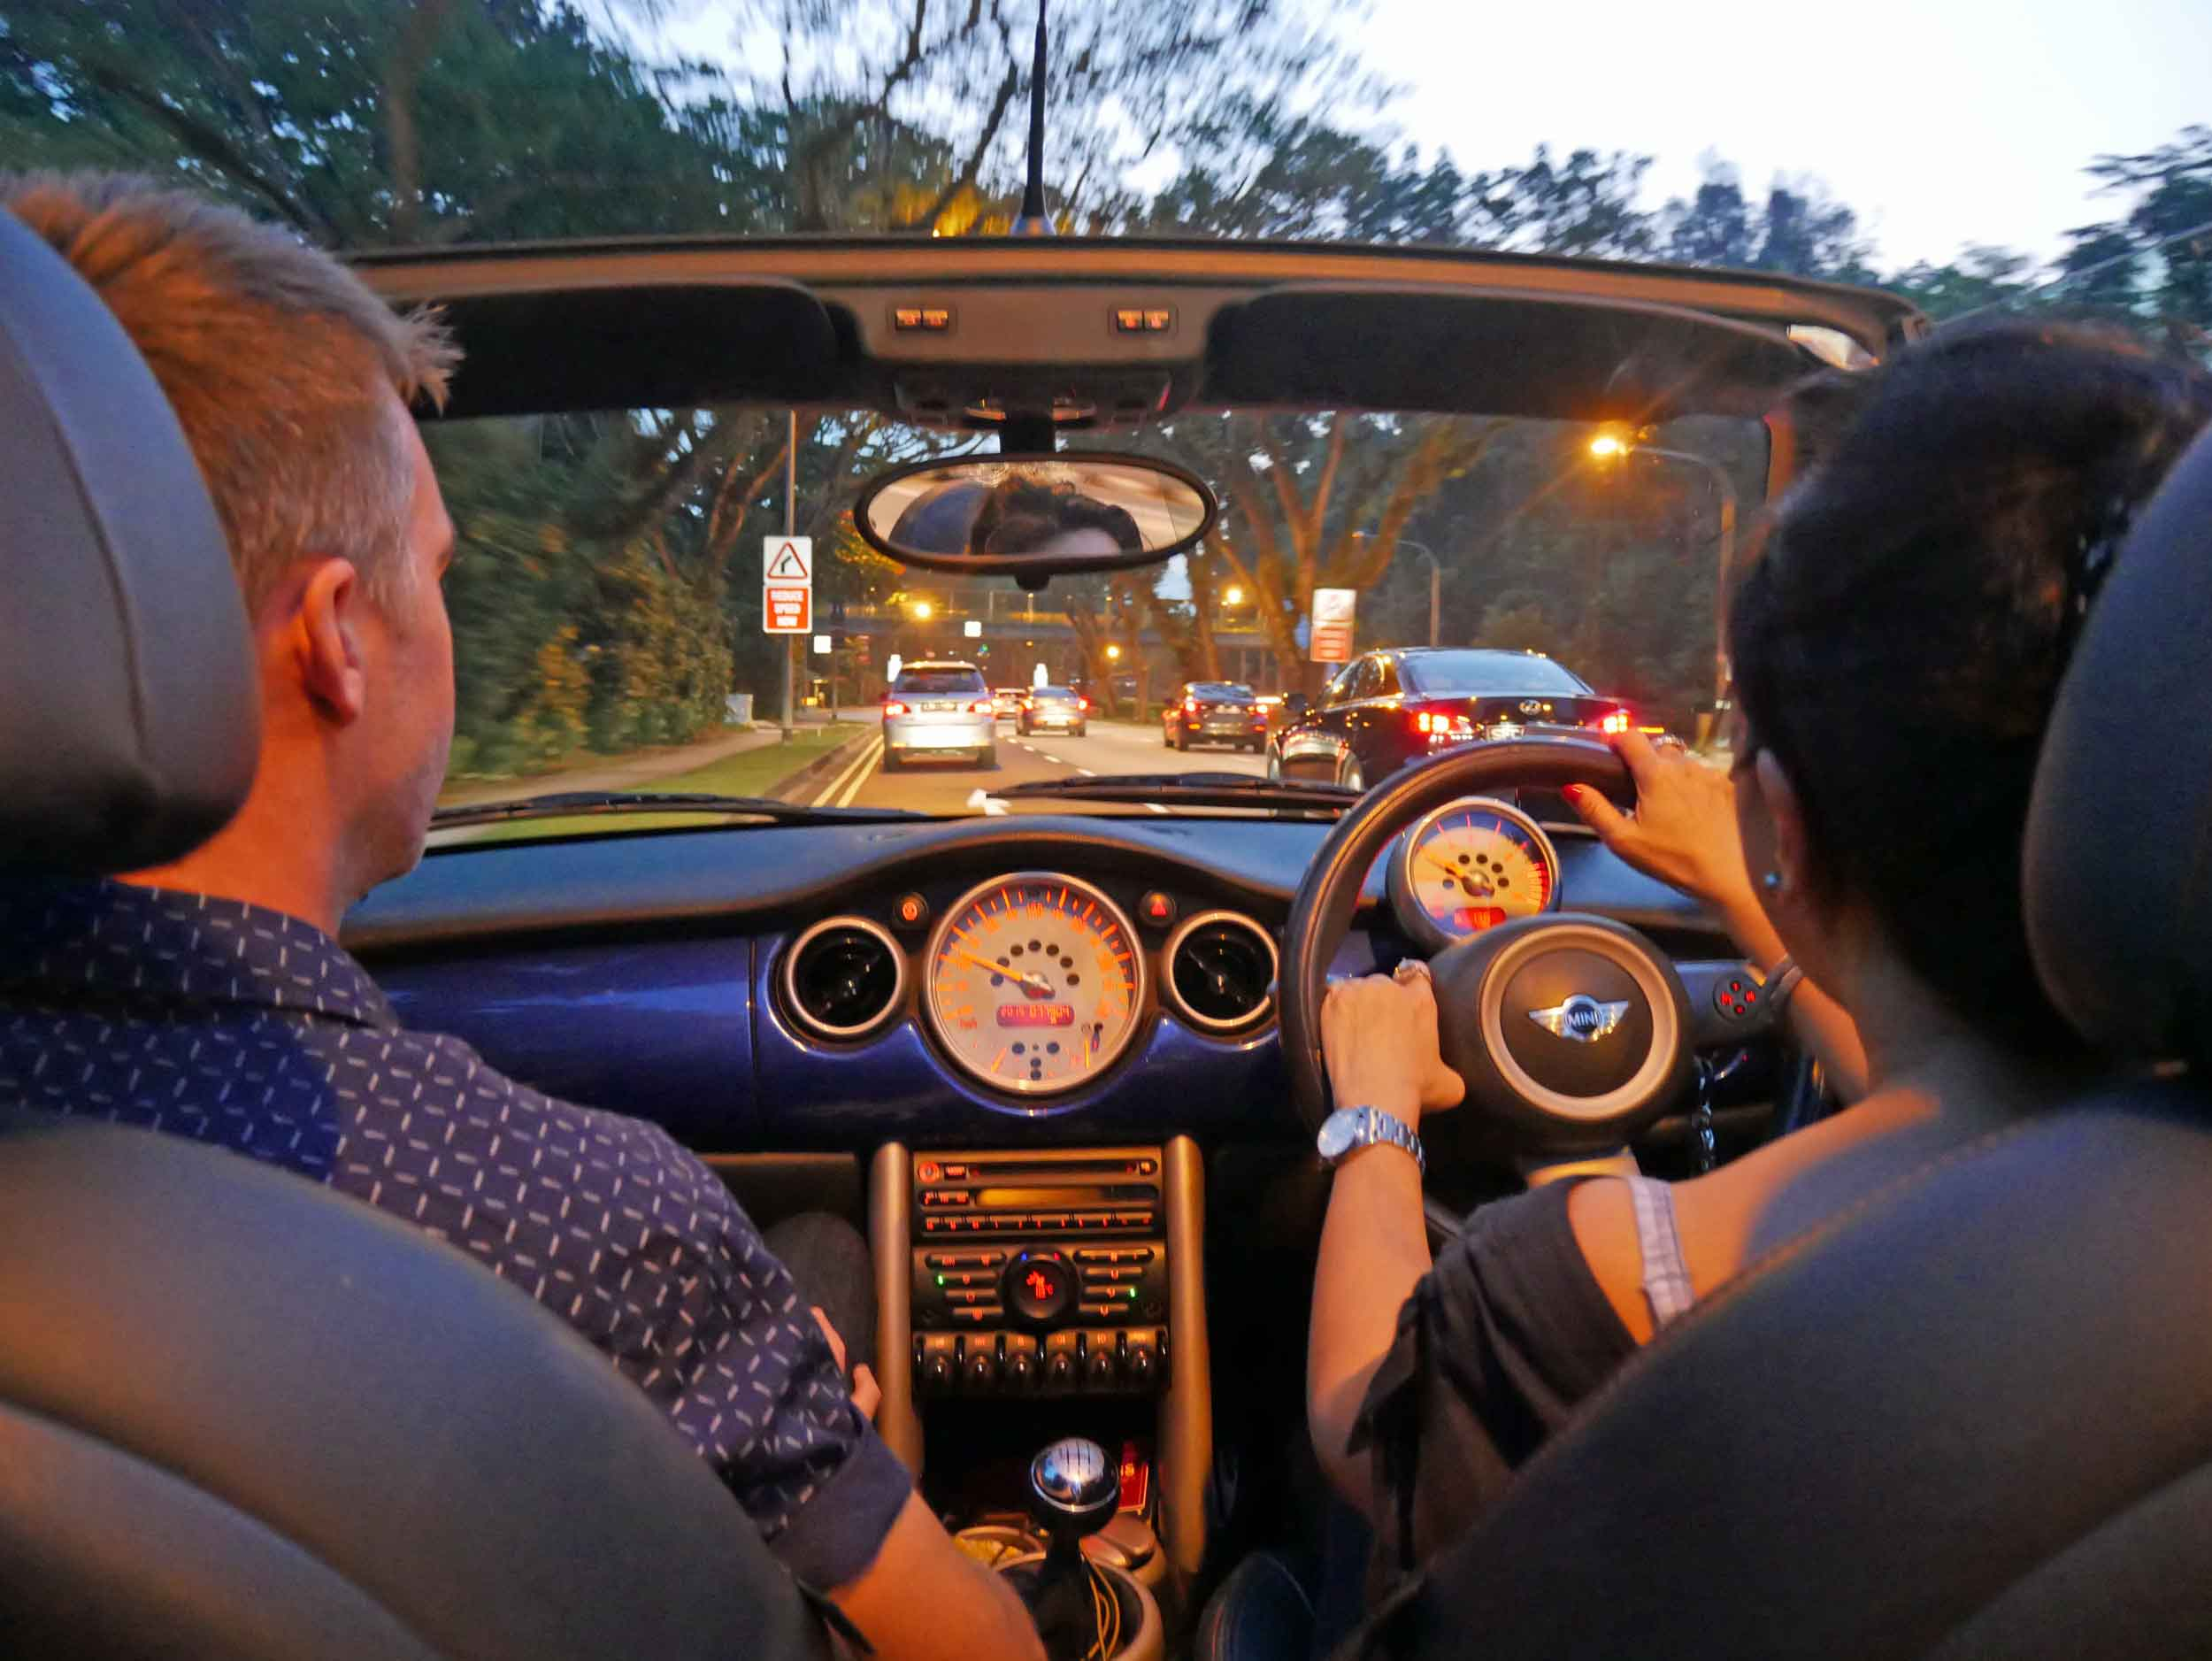 A convertible is a Singapore must-do, and thankfully our friend Fay offered to drive us around town to see the sights.